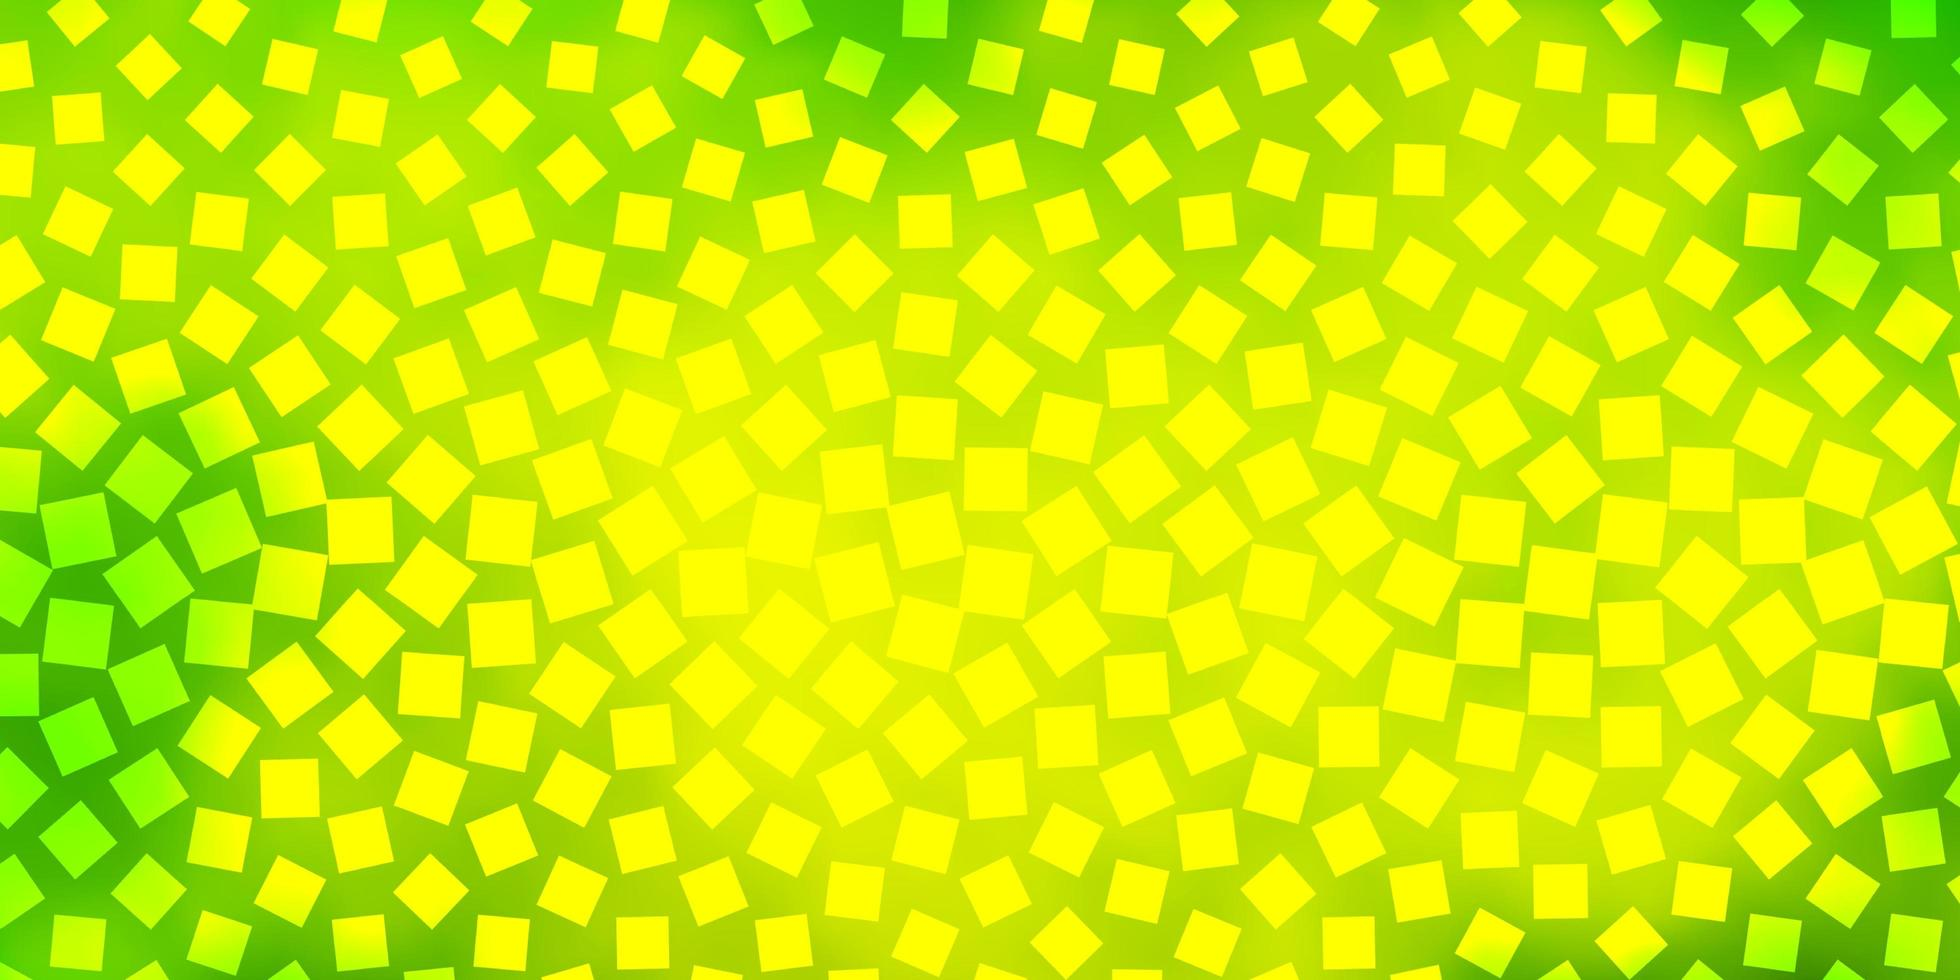 Light Green, Yellow vector background in polygonal style.